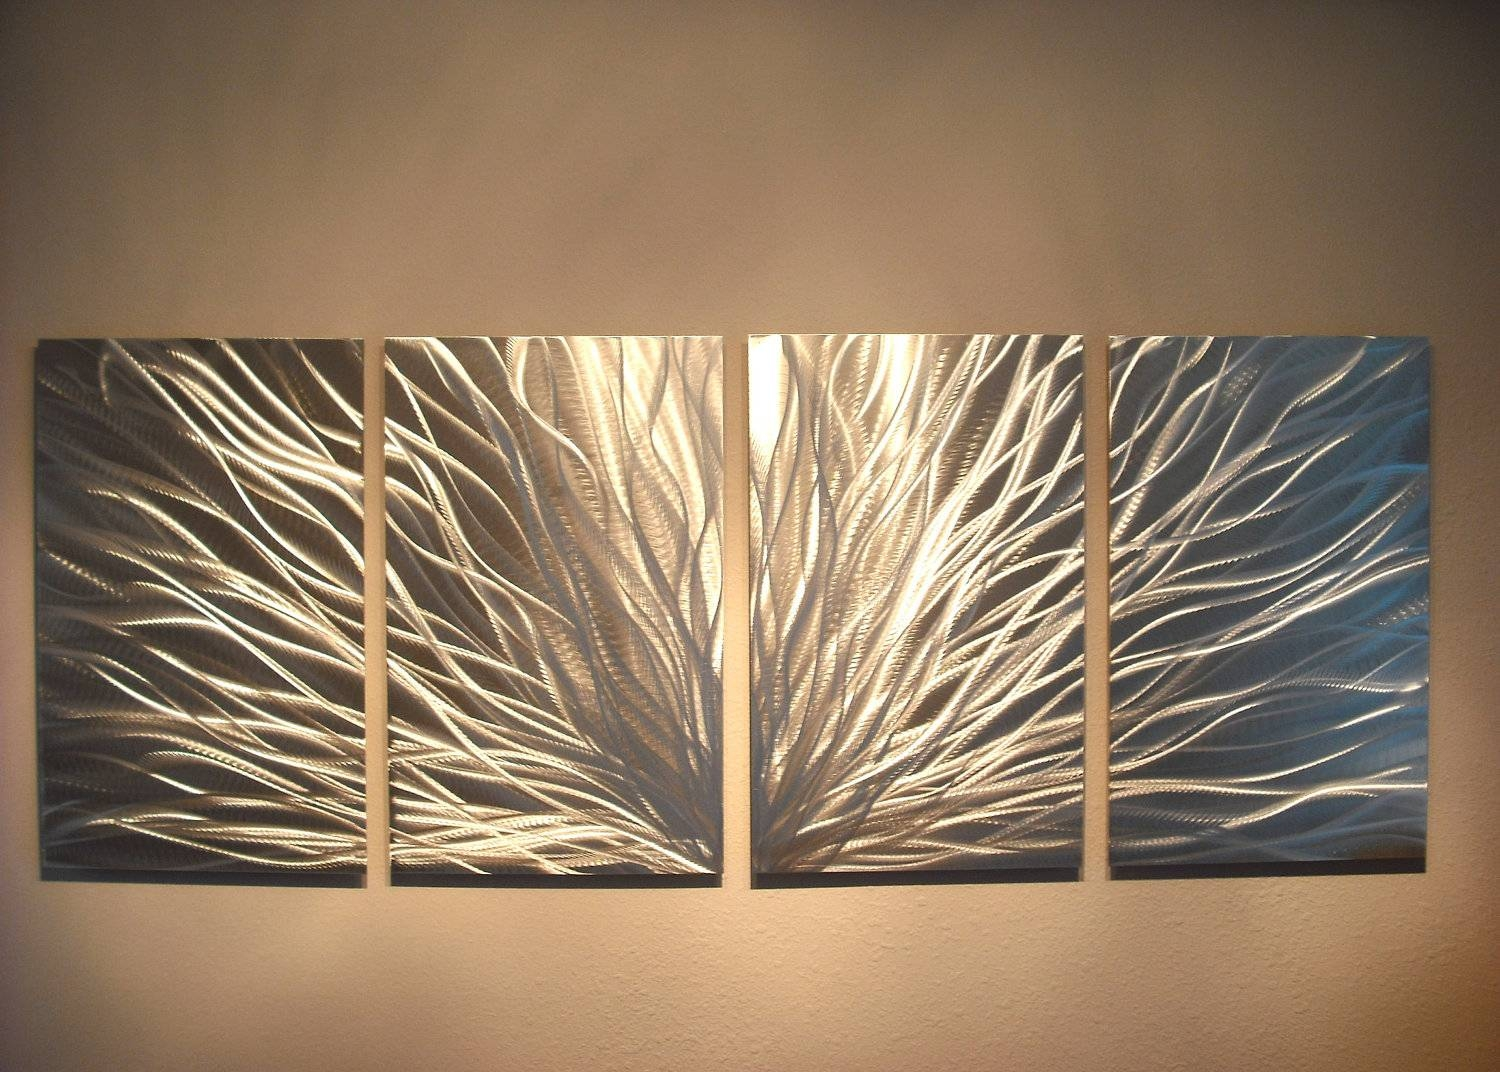 Radiance – Abstract Metal Wall Art Contemporary Modern Decor With Regard To 2018 Faux Metal Wall Art (View 13 of 20)